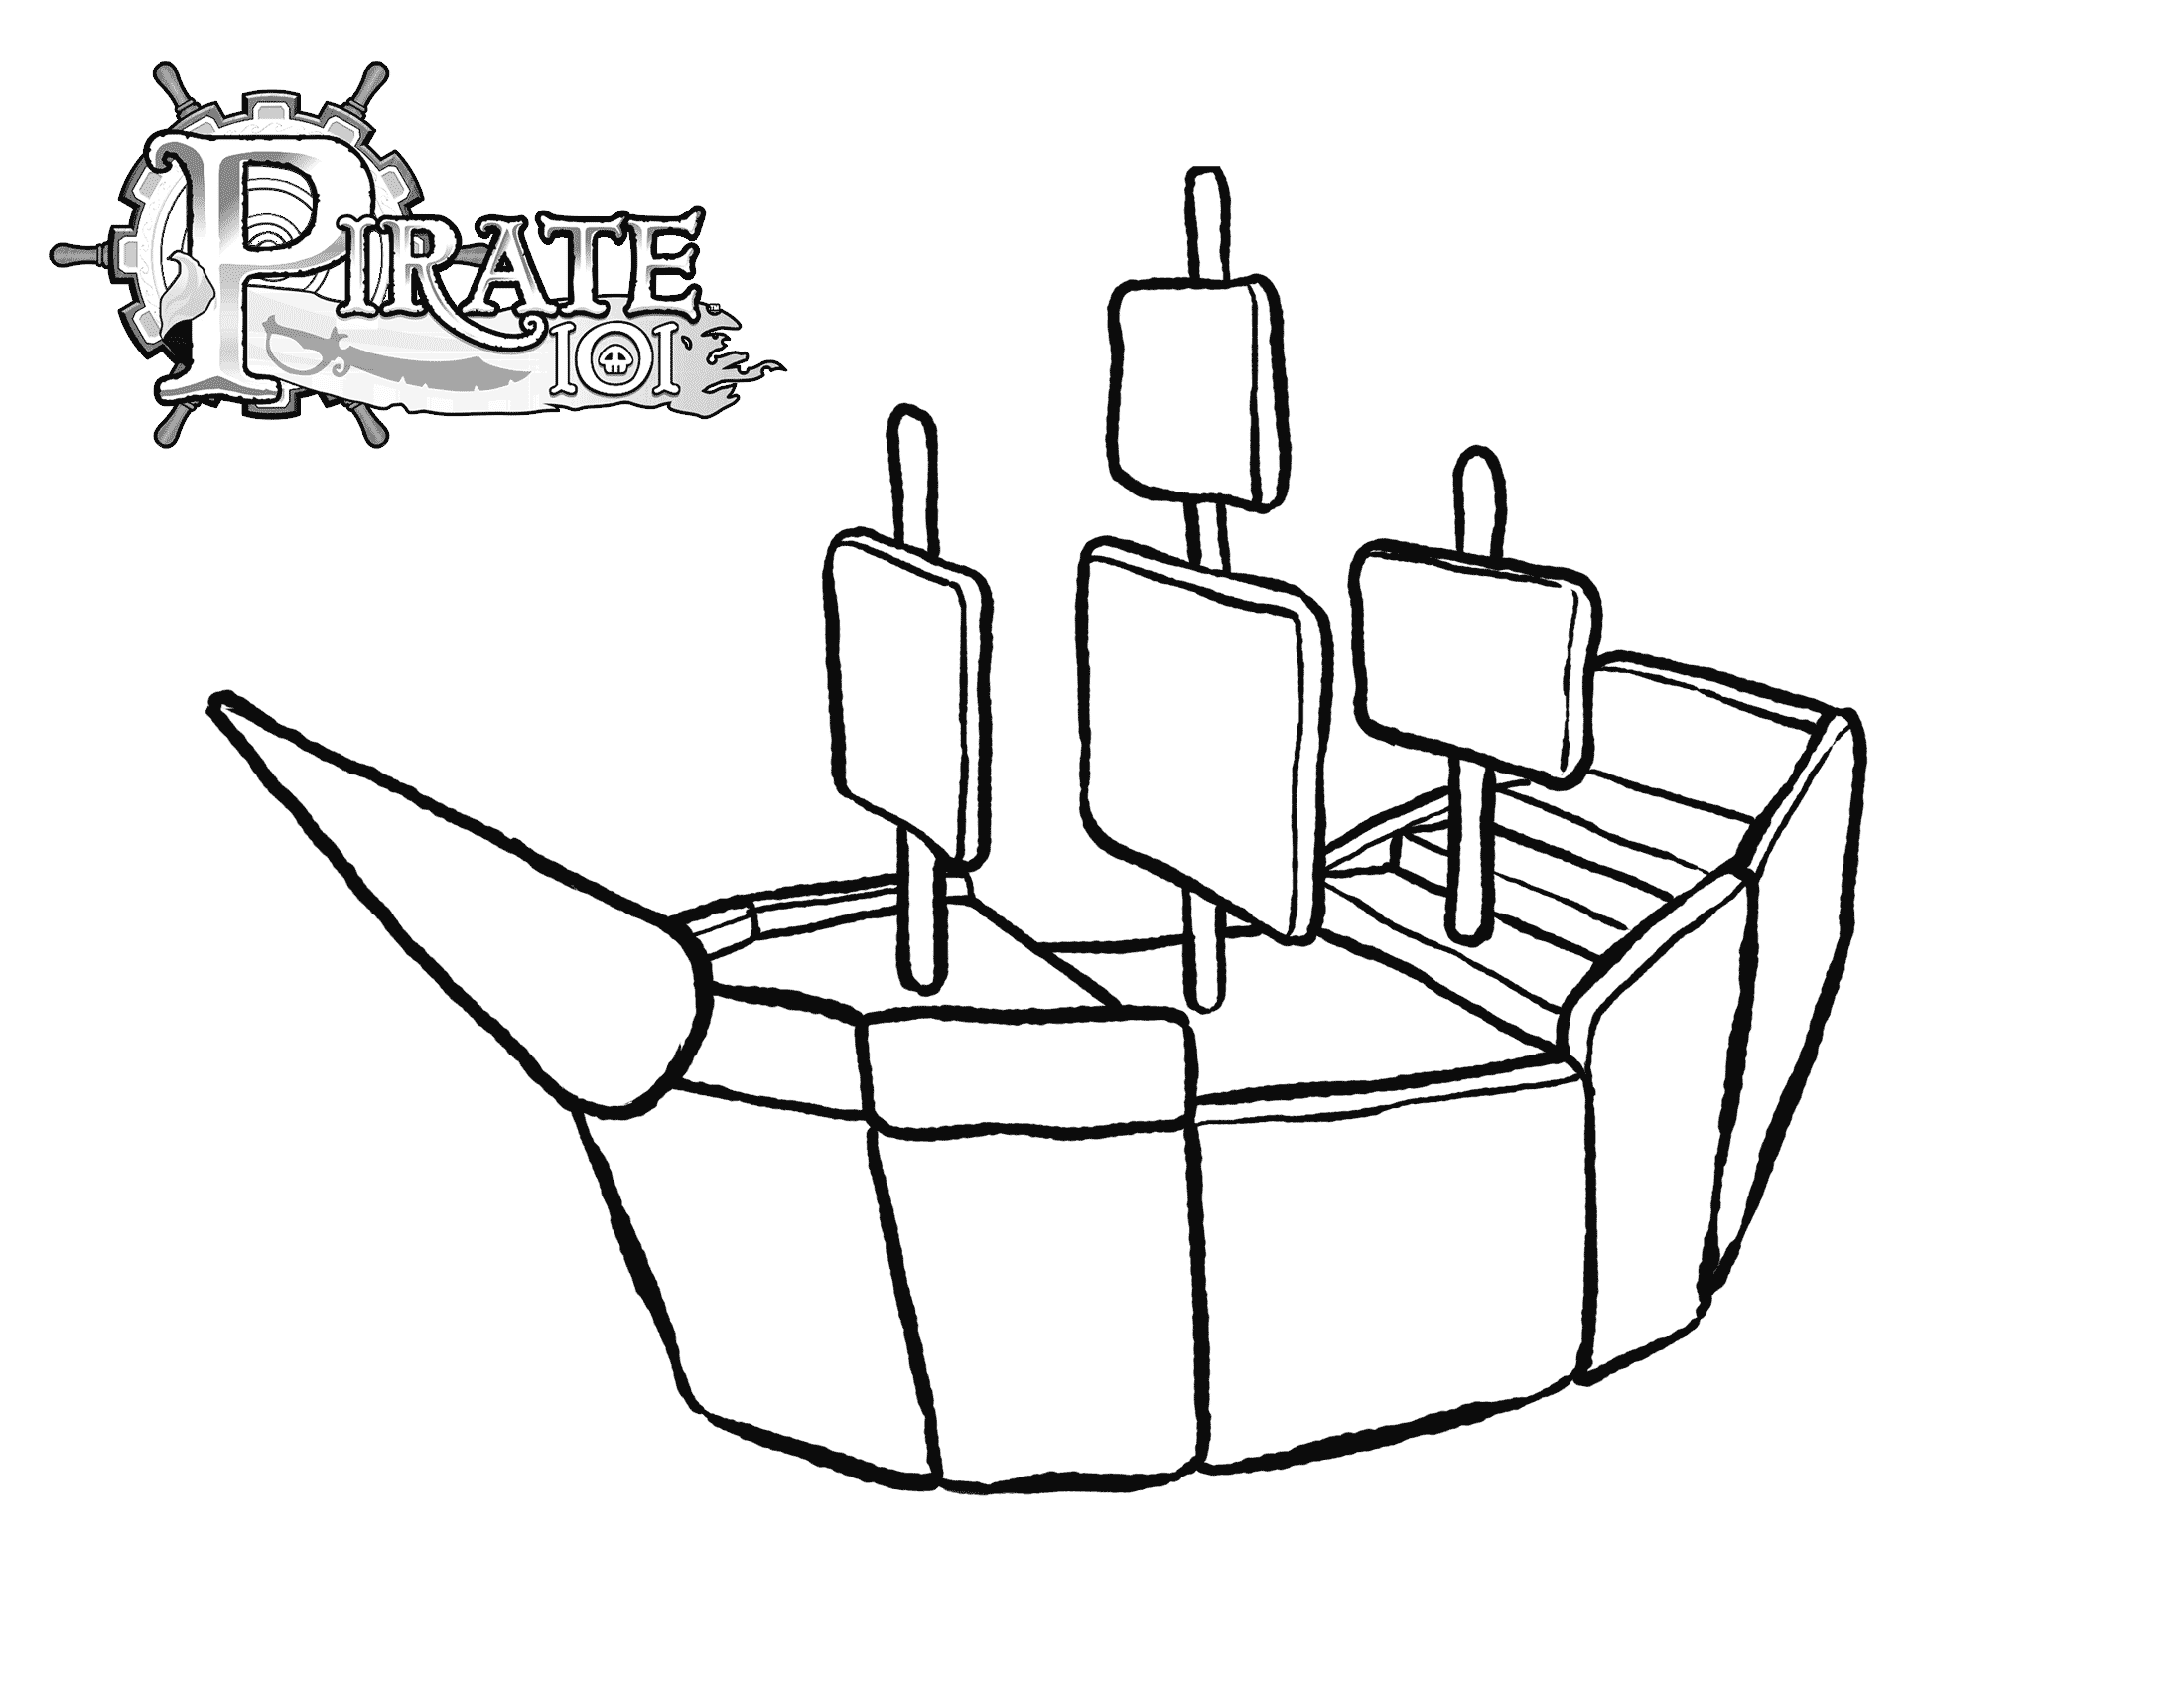 pirate ship template cake ideas and designs